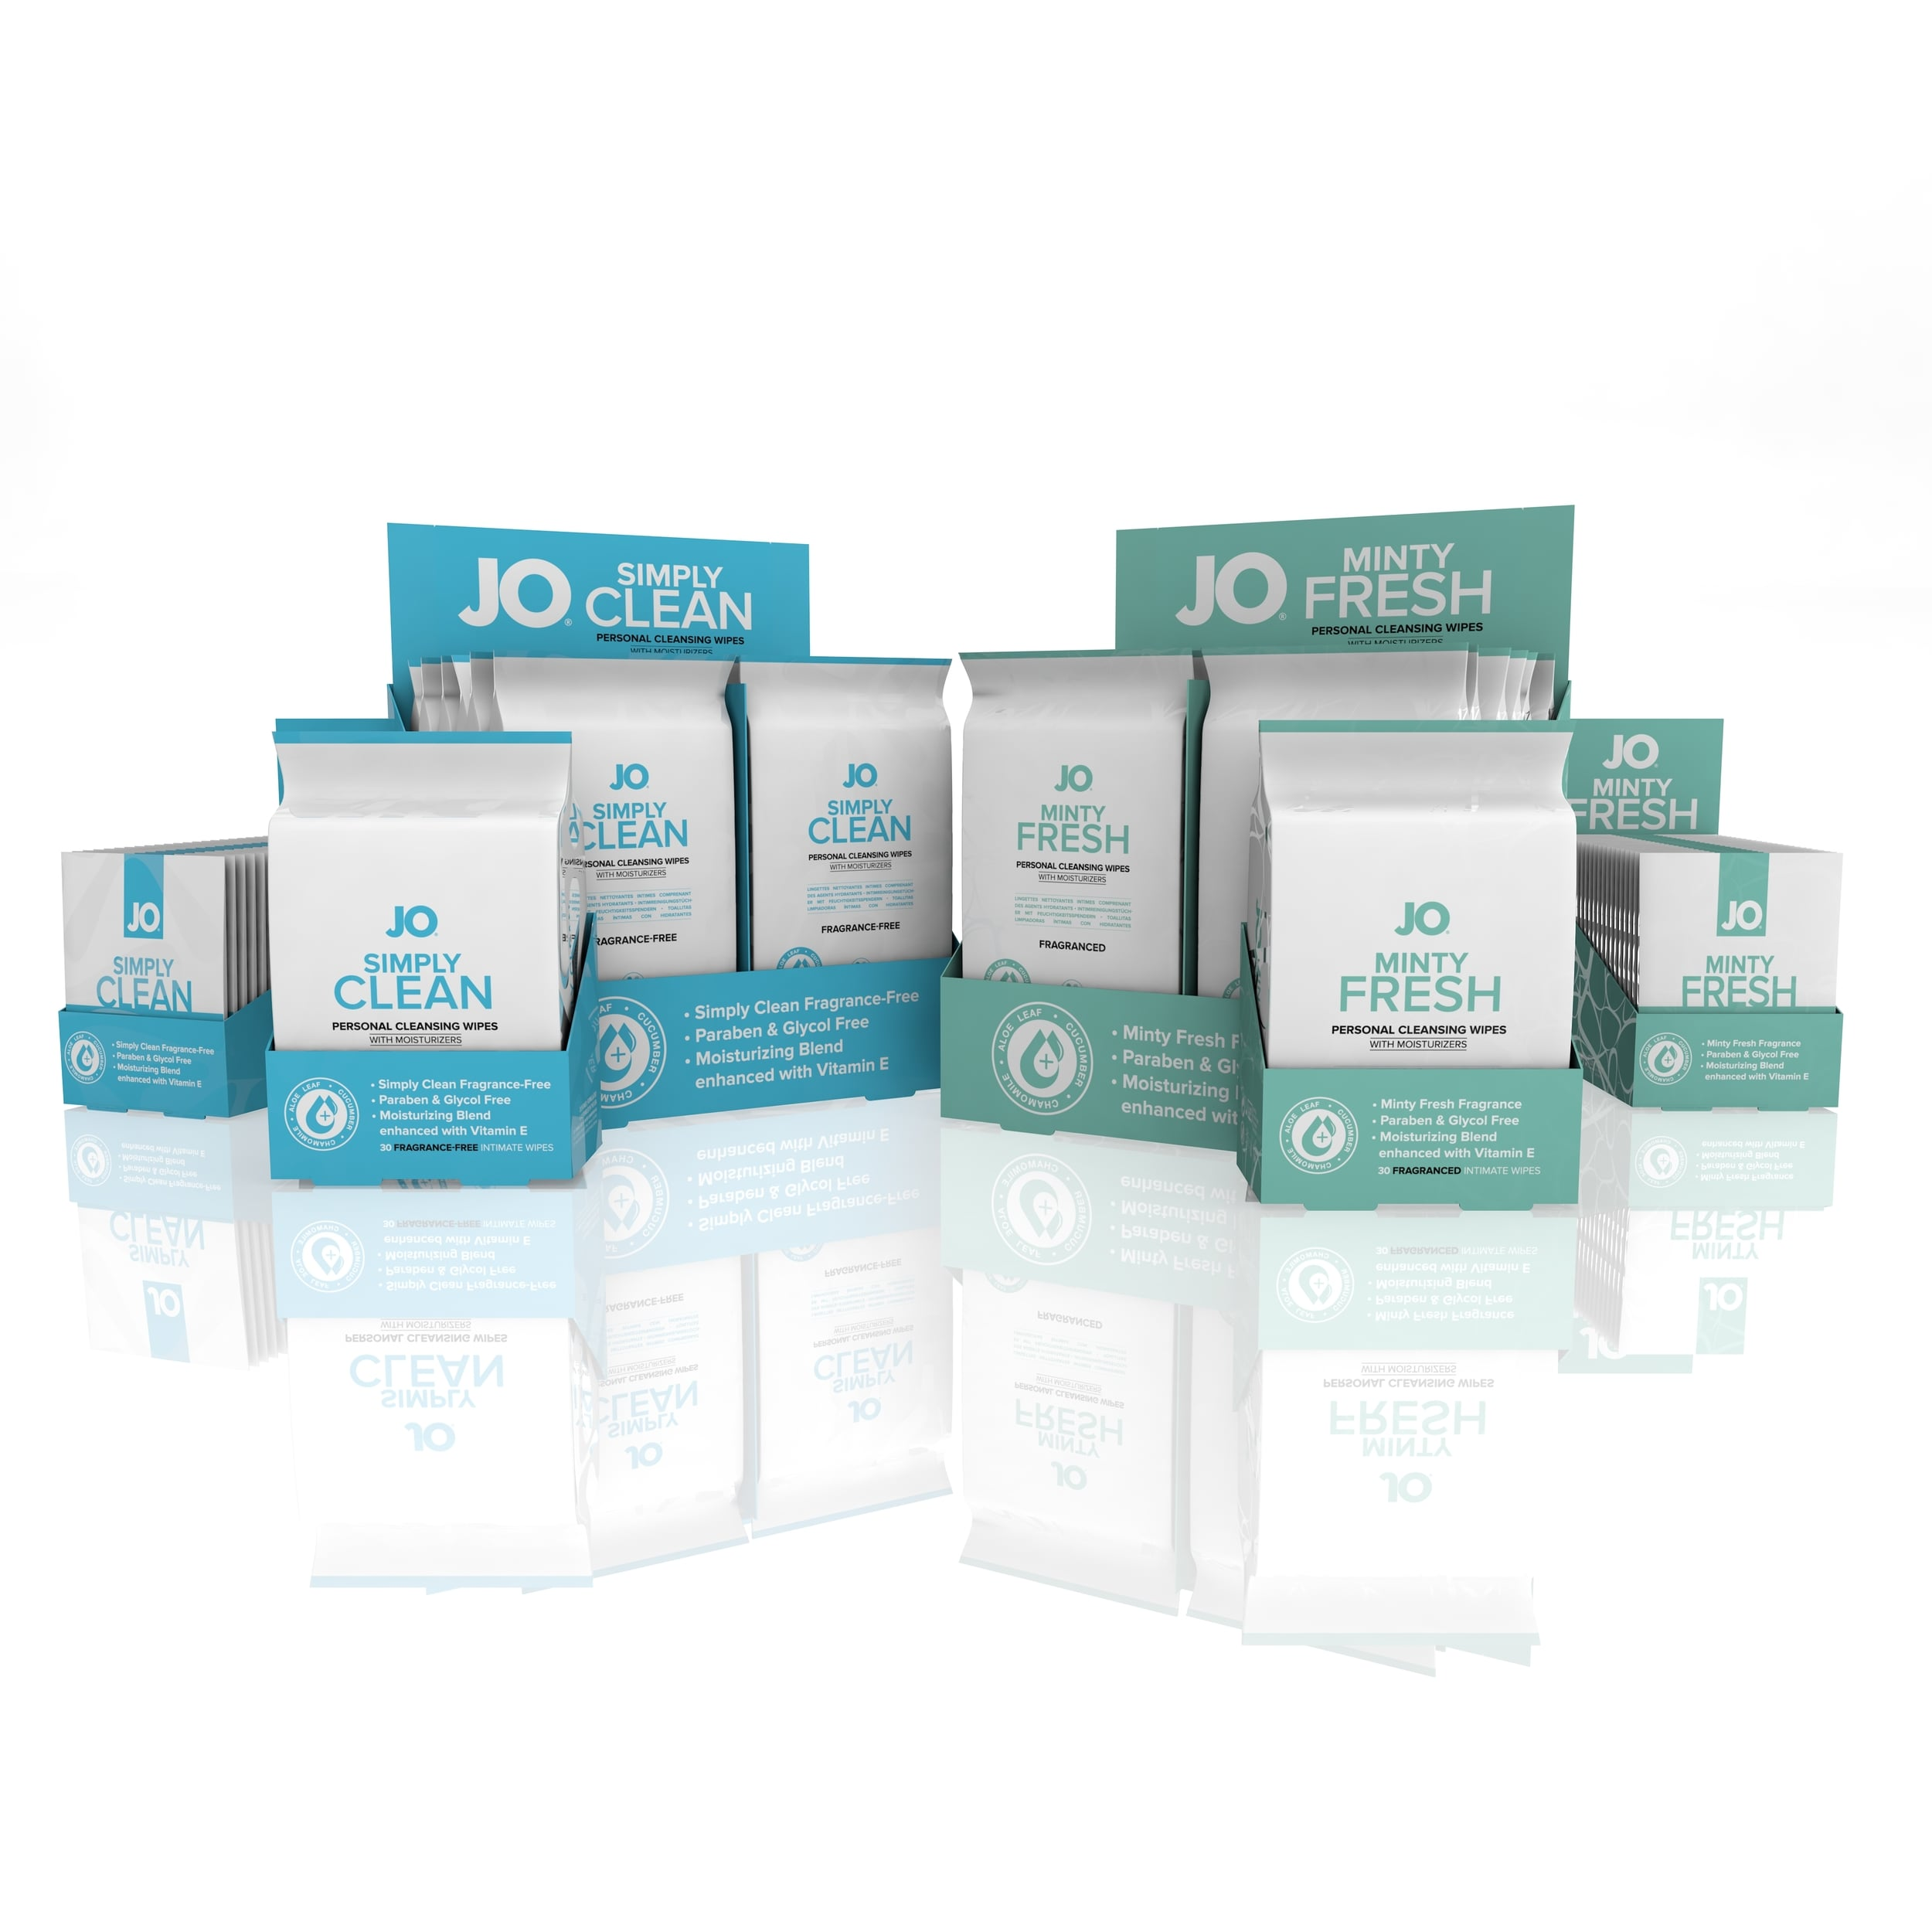 JO PERSONAL CLEANSING WIPES Family Cluster.jpg